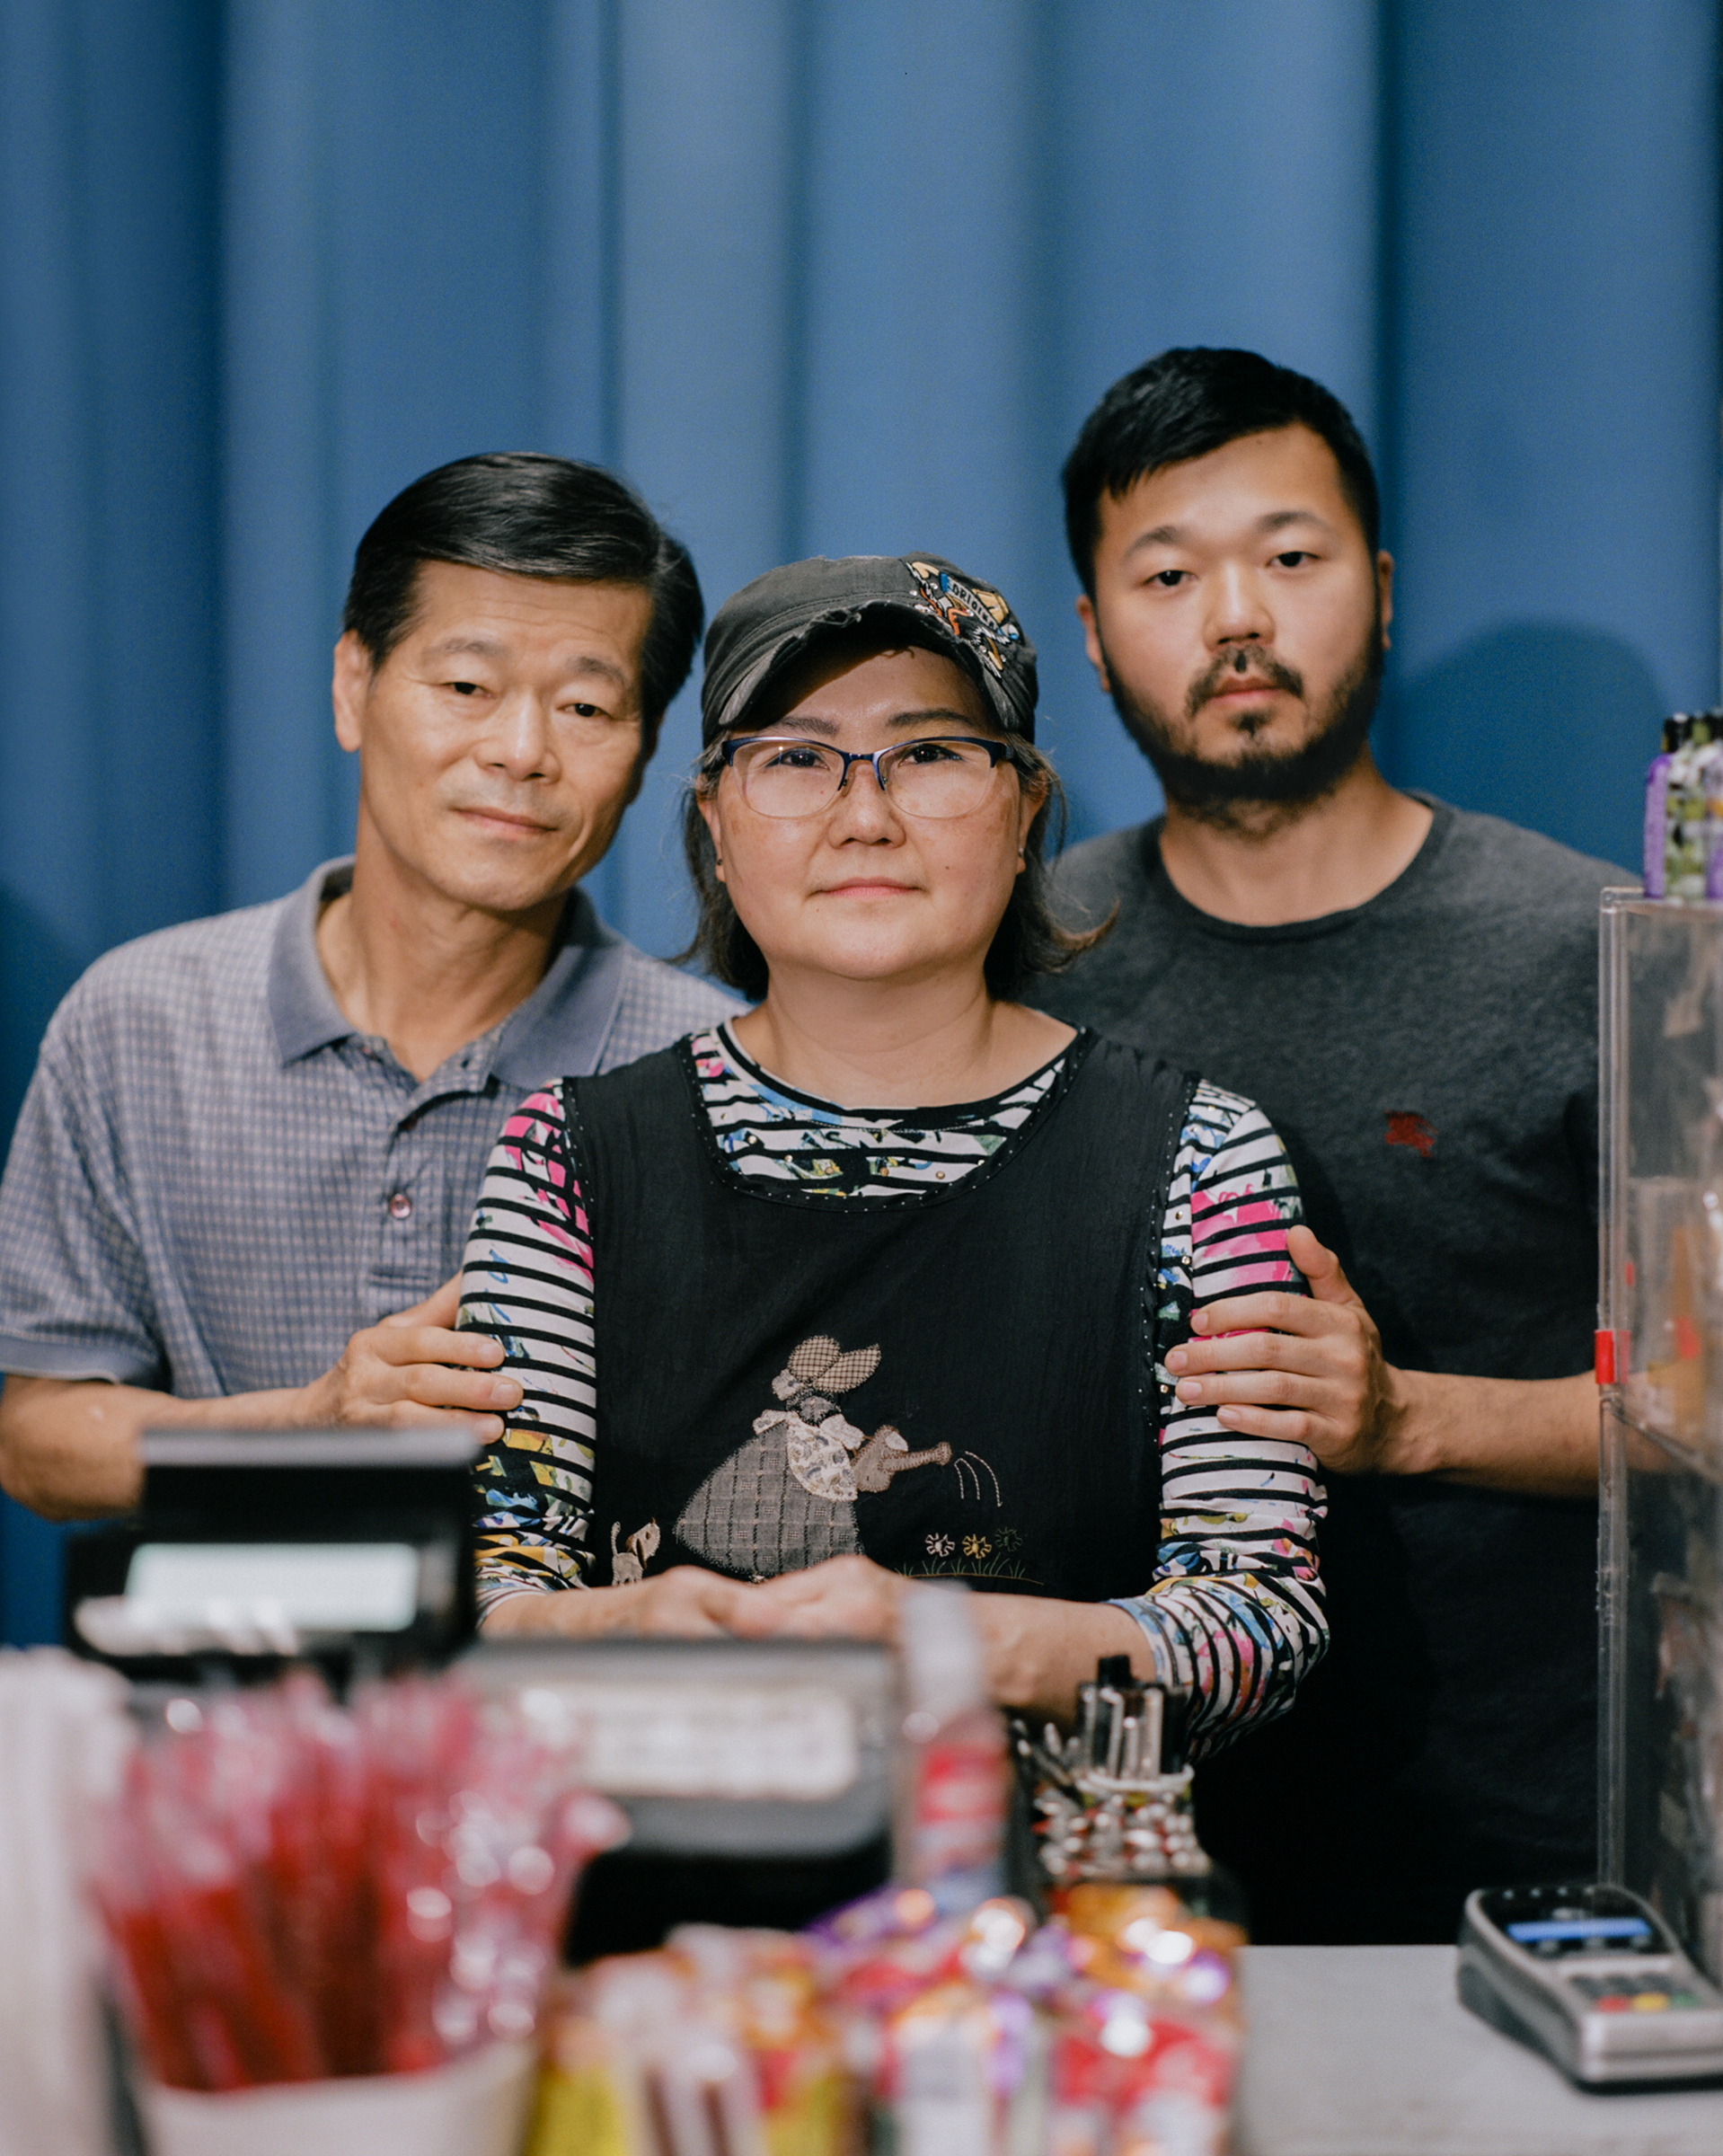 """'I STILL WISH FOR A BETTER LIFE.' Mun Sung, left, and Joyce Sung, center, stand with their 35-year-old son Mark Sung, right, in the family's Charlotte, N.C., convenience store on May 29. The elder Sungs watched helplessly on March 30 as a man smashed through glass with a metal pole, ripped down racks and hurled racial slurs at them inside the store they've owned for two decades. Despite facing racism at work on a daily basis since the pandemic began—even growing hardened to the hatred month after month—Mun never expected his family would fall victim to such violence. """"I feel so terribly bad,"""" the 65-year-old says, """"because how can people do that to us?"""" Less than two months later, it happened again. On May 25, after being told he did not have enough money for cigarettes, a customer shouted racial slurs as he pummeled a sheet of plexiglass at the checkout counter until it shattered on Joyce, 63, bruising her forehead. """"Knowing that we're going to get cursed out every day while we're getting ready for work,"""" she says, pausing to think, """"we don't know what words to use."""" The family has few other options. The pandemic drove down sales at the store by about 45%—and all their employees quit over safety concerns—so the Sungs say they don't have the luxury to stop working. Instead, they clock in 13-hour days, seven days a week, and have developed a routine for responding to hate: call the police, assess the damage, file an insurance claim, then go back to work. It's not the life Mun imagined for himself or his family when he left South Korea for the U.S. in 1983. But he and Joyce keep going, in large part to have some money to leave for Mark's two toddlers, their only grandchildren. """"The first time I came to the United States, I had big dreams and high hopes,"""" Mun says. """"I didn't make it, but I still wish for a better life."""""""